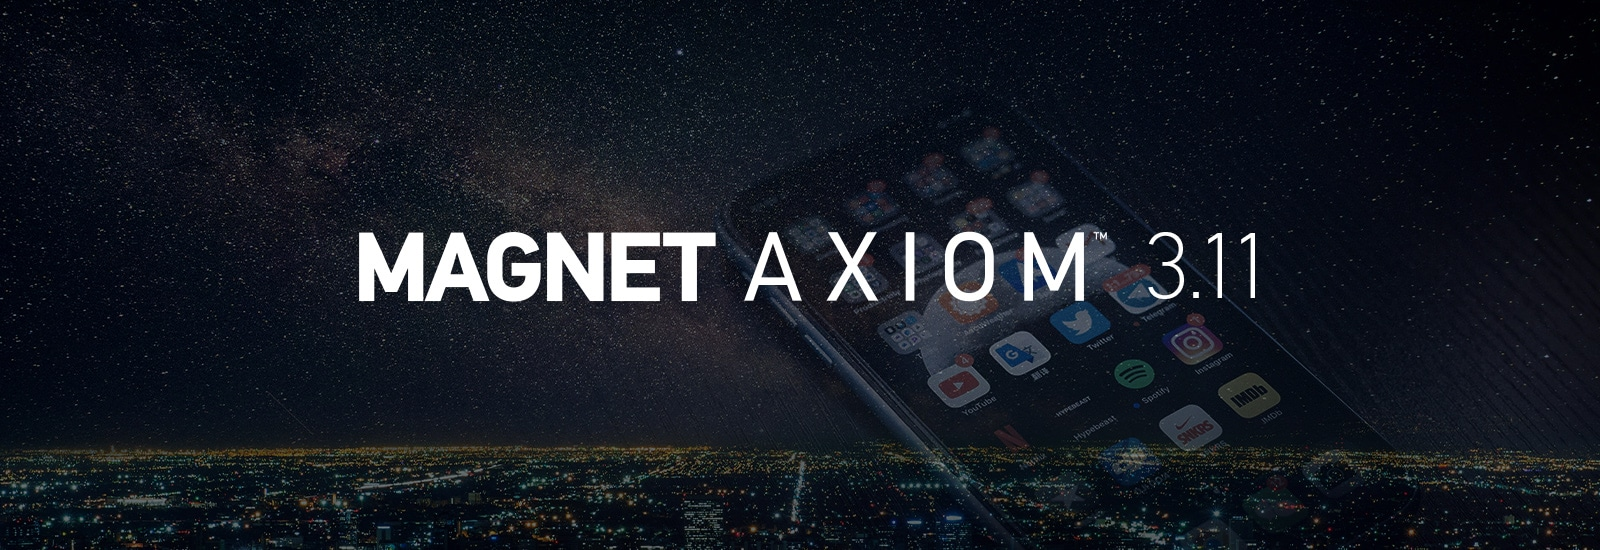 Magnet AXIOM 3.11 Now Available with Device Identifiers, .DAR File Support and More!